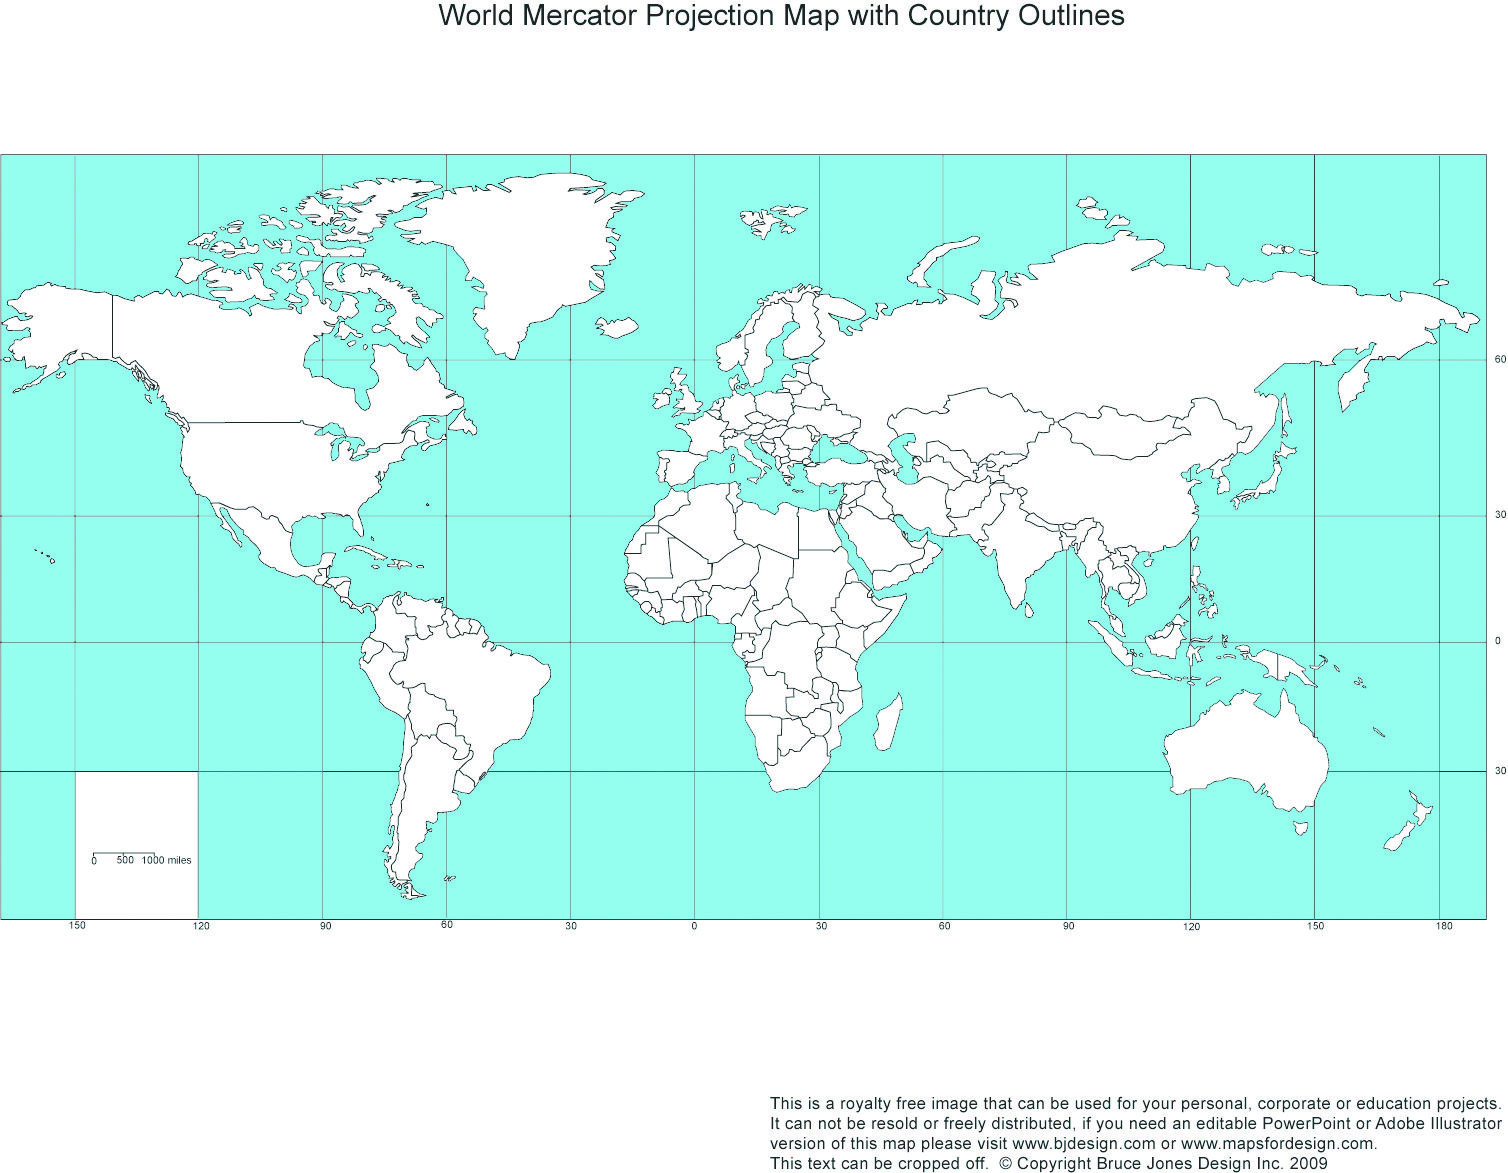 World mercator blank base map ocean blue sudan still one country world mercator blank base map ocean blue sudan still one country gumiabroncs Gallery